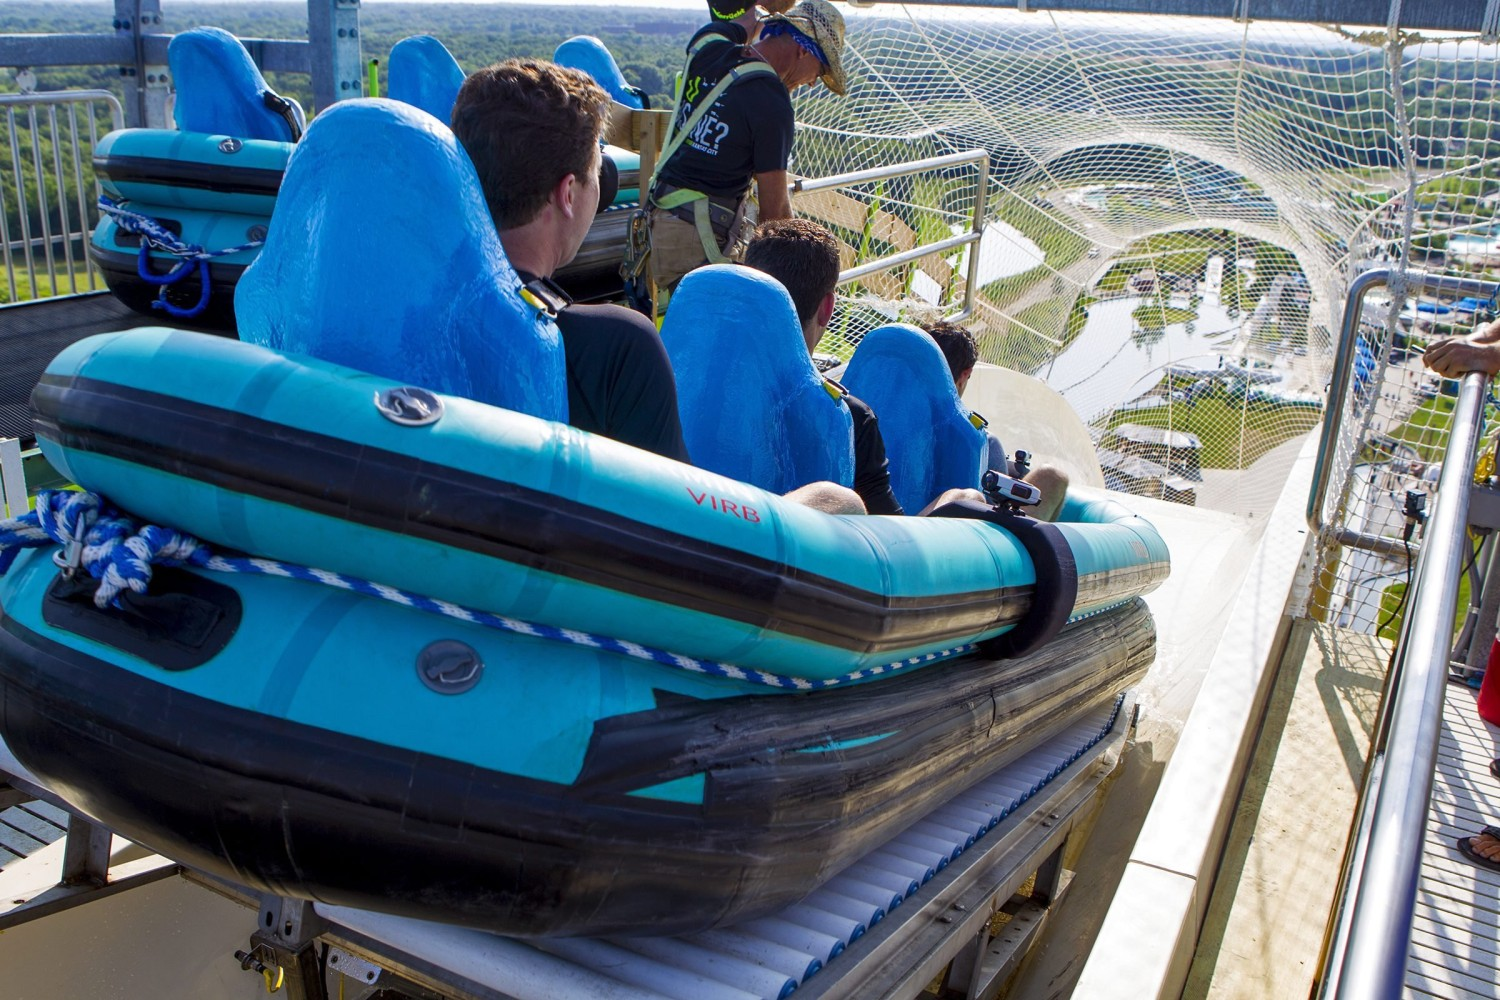 AP first-person account of riding world's tallest waterslide